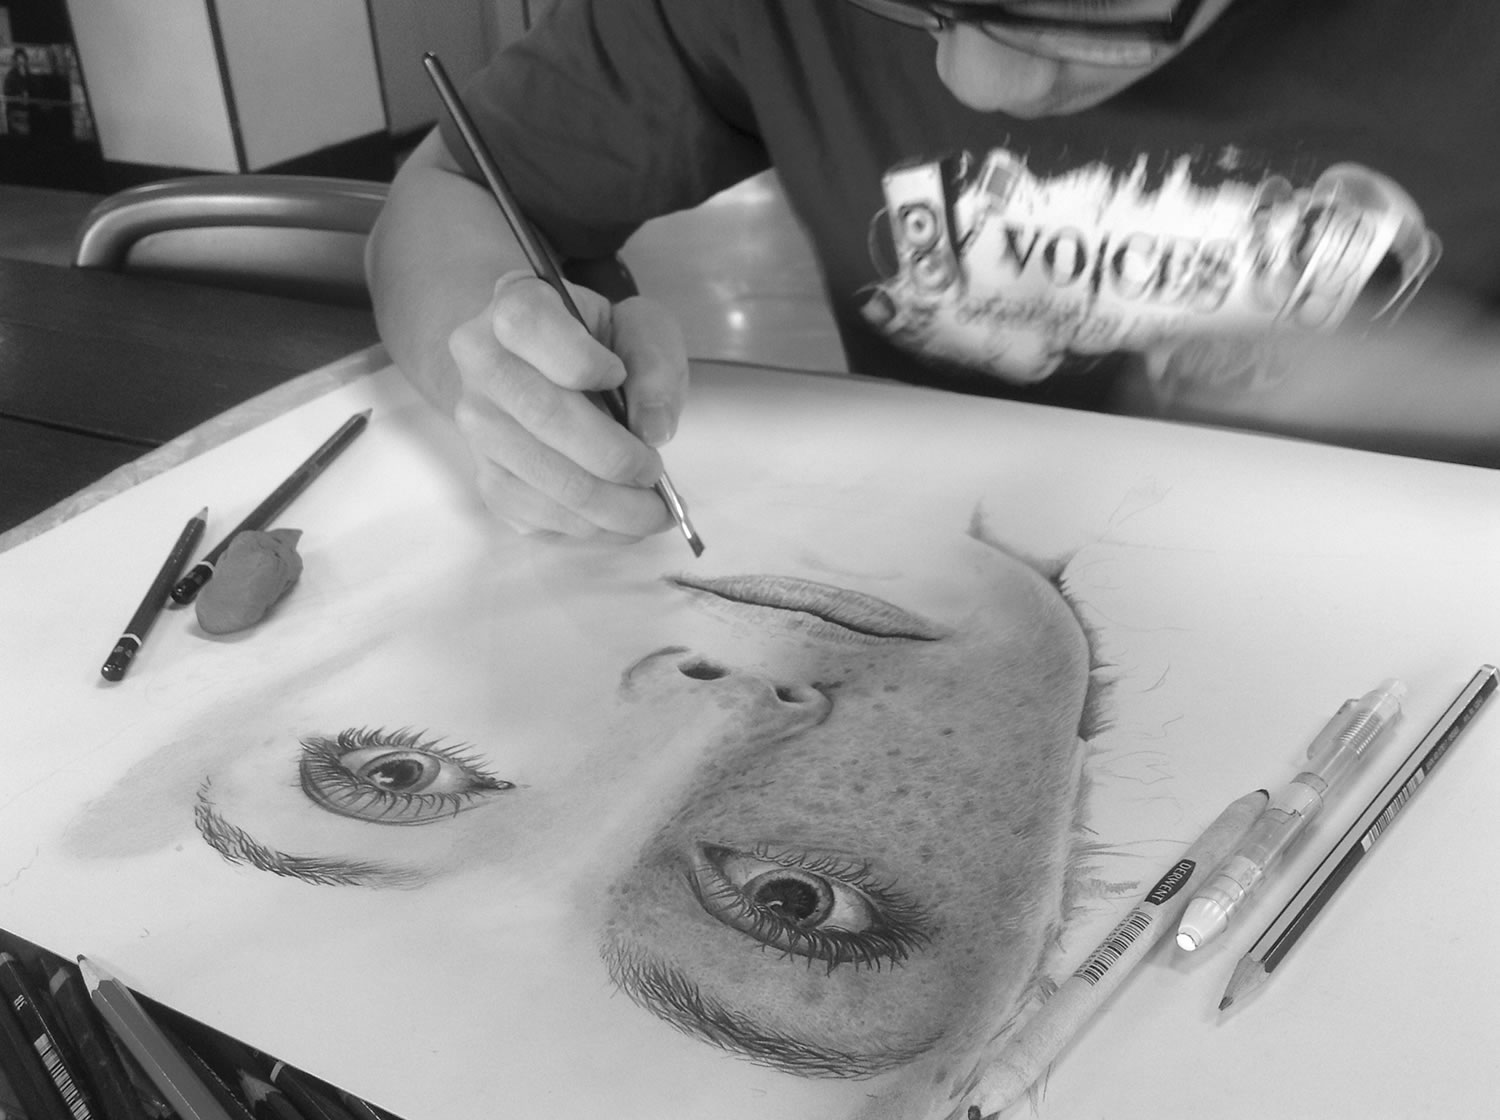 artist chong yi drawing a portrait of a freckled woman